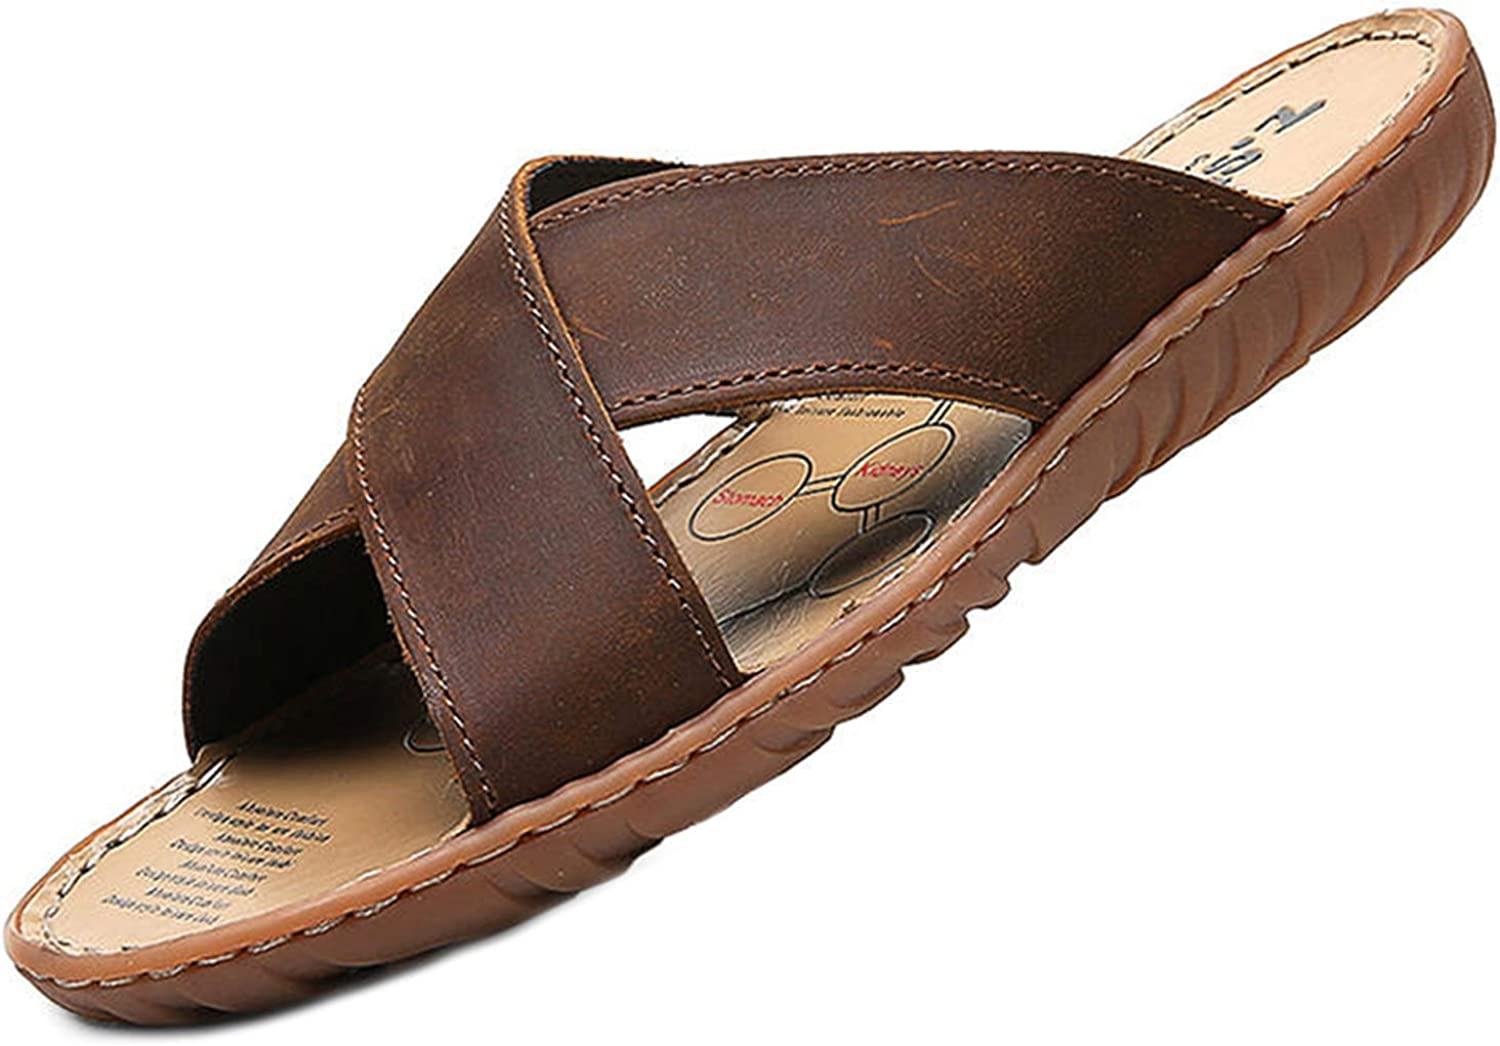 LIAN Store Summer Men Slippers Leather Cross Strap Beach Water shoes Men Brown Slides